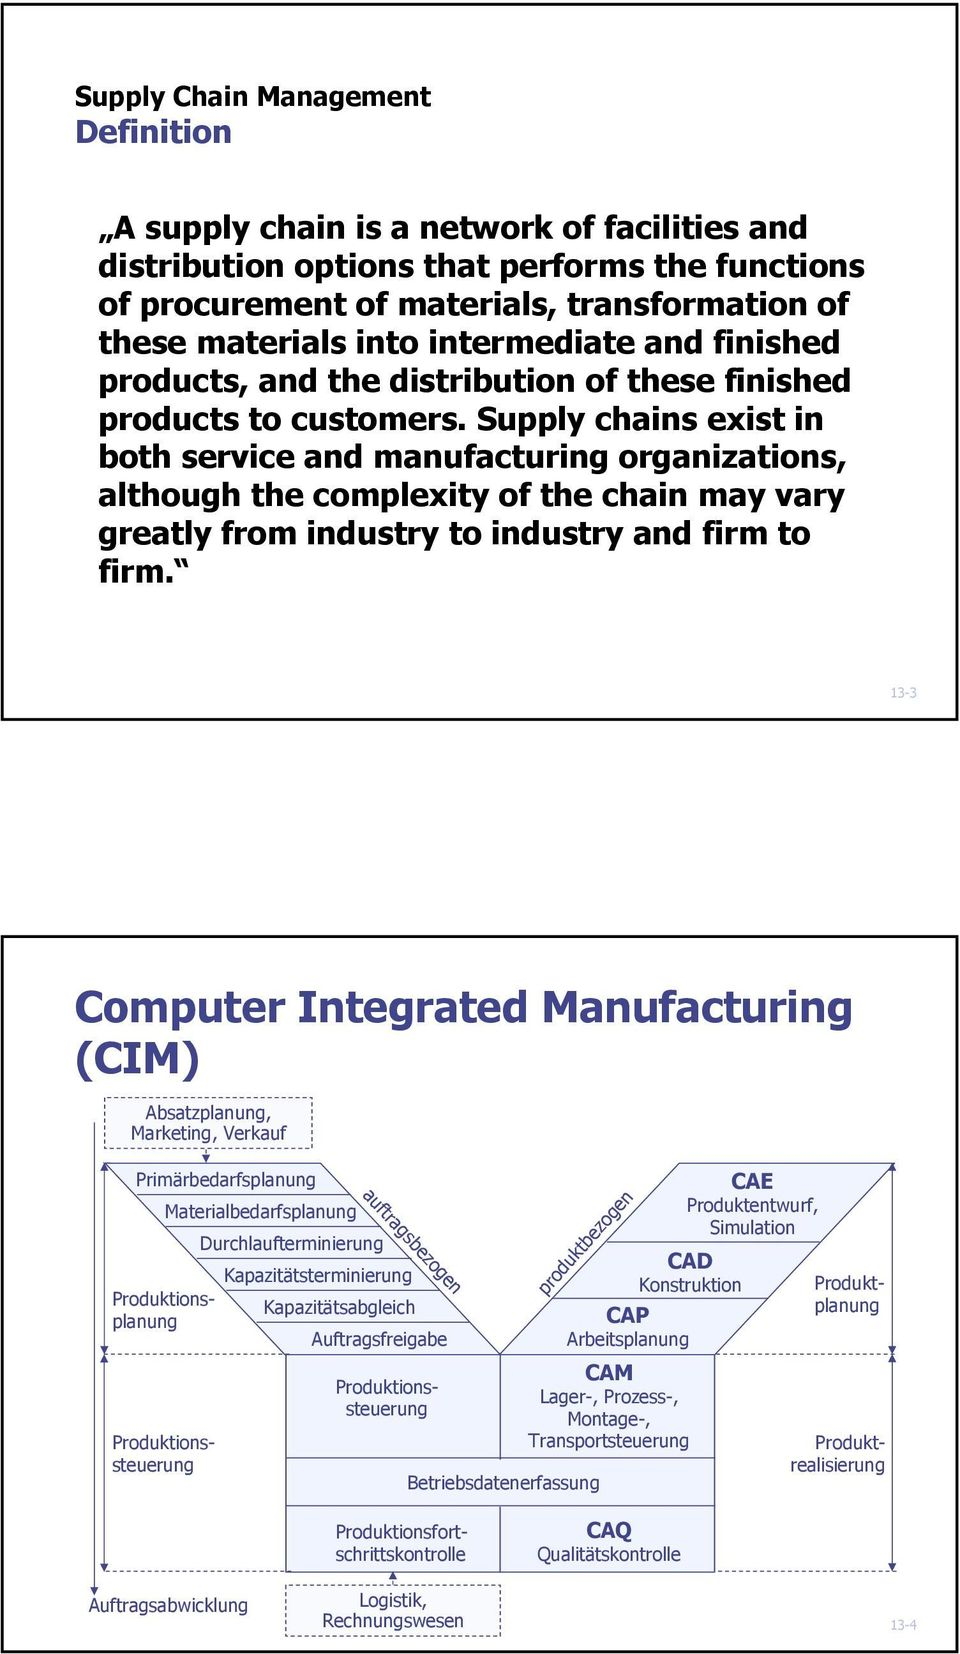 Supply chains exist in both service and manufacturing organizations, although the complexity of the chain may vary greatly from industry to industry and firm to firm.